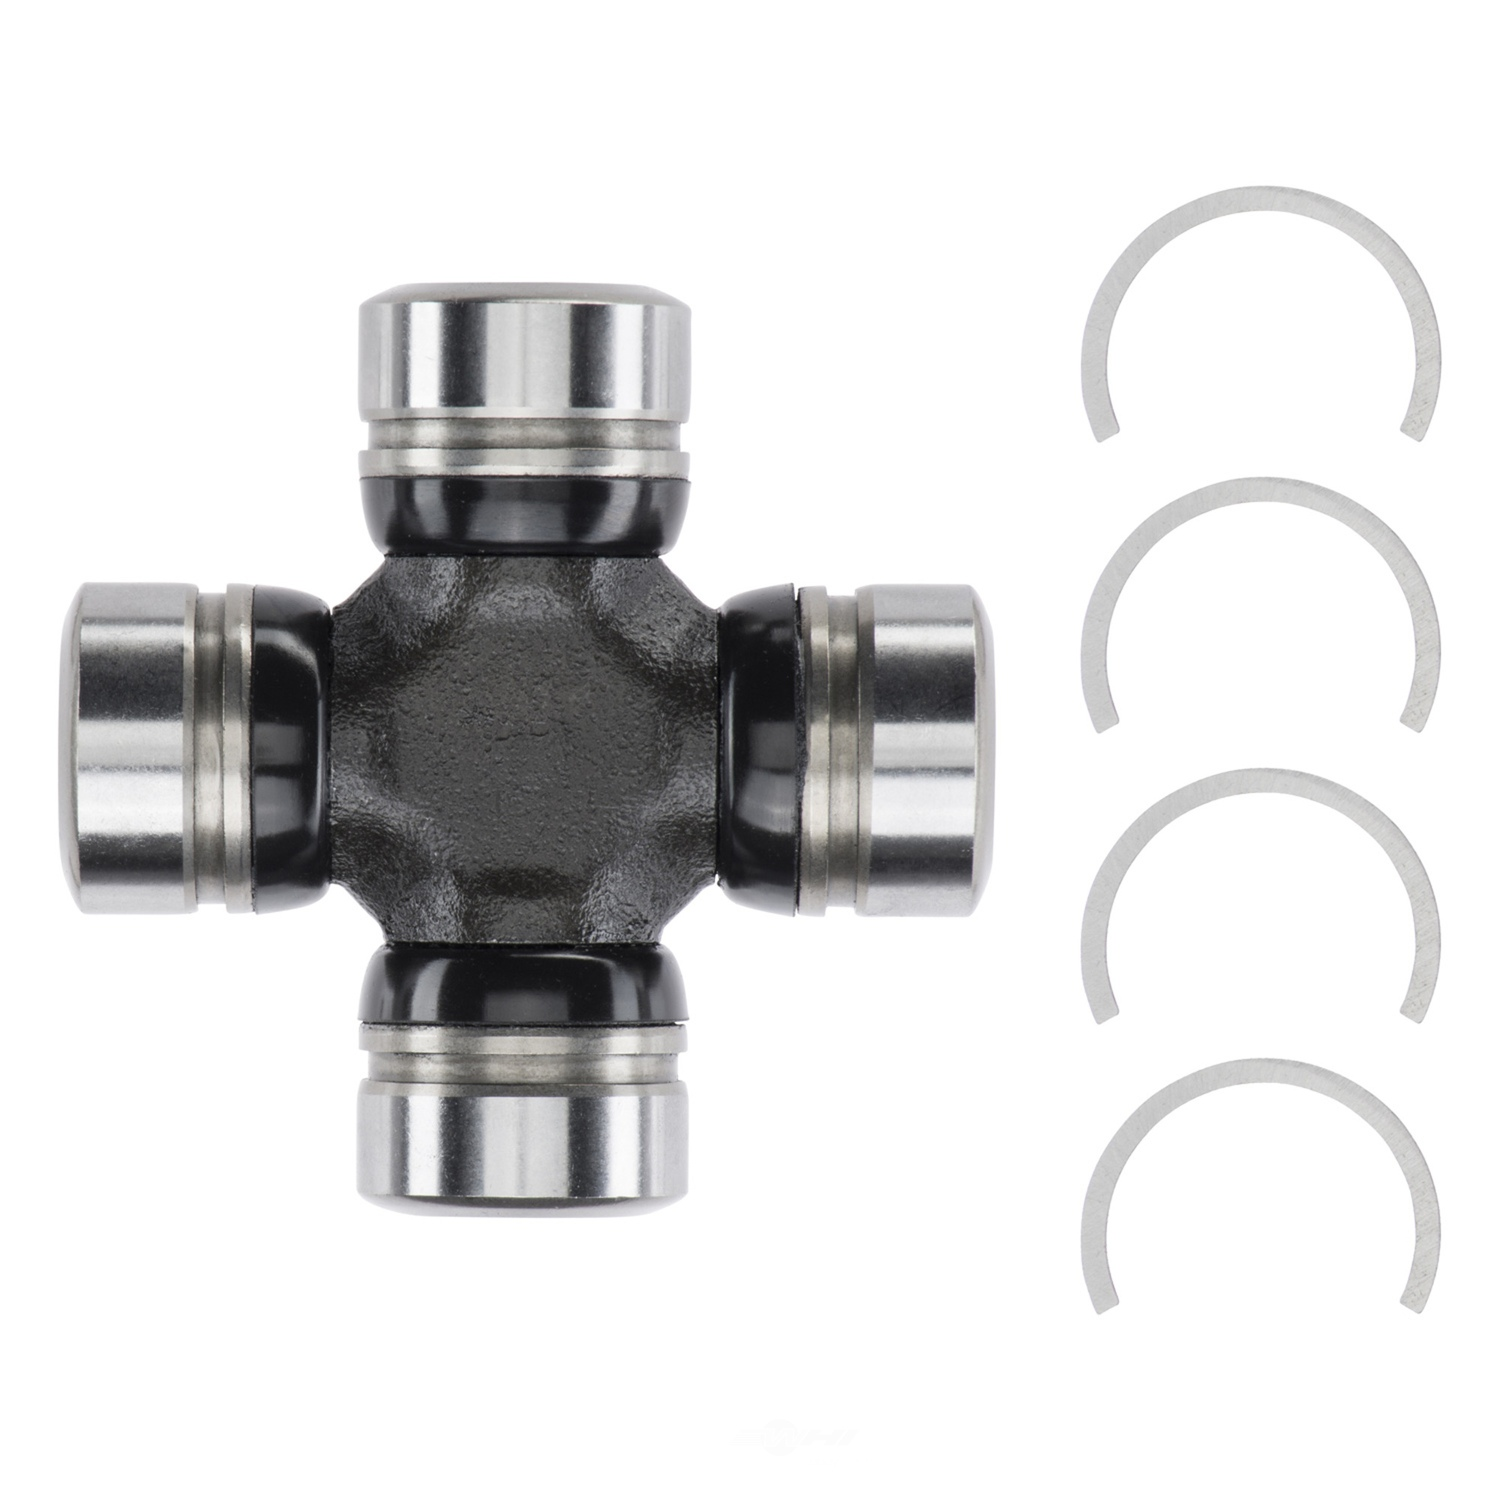 MOOG DRIVELINE PRODUCTS - Universal Joint - MDP 371